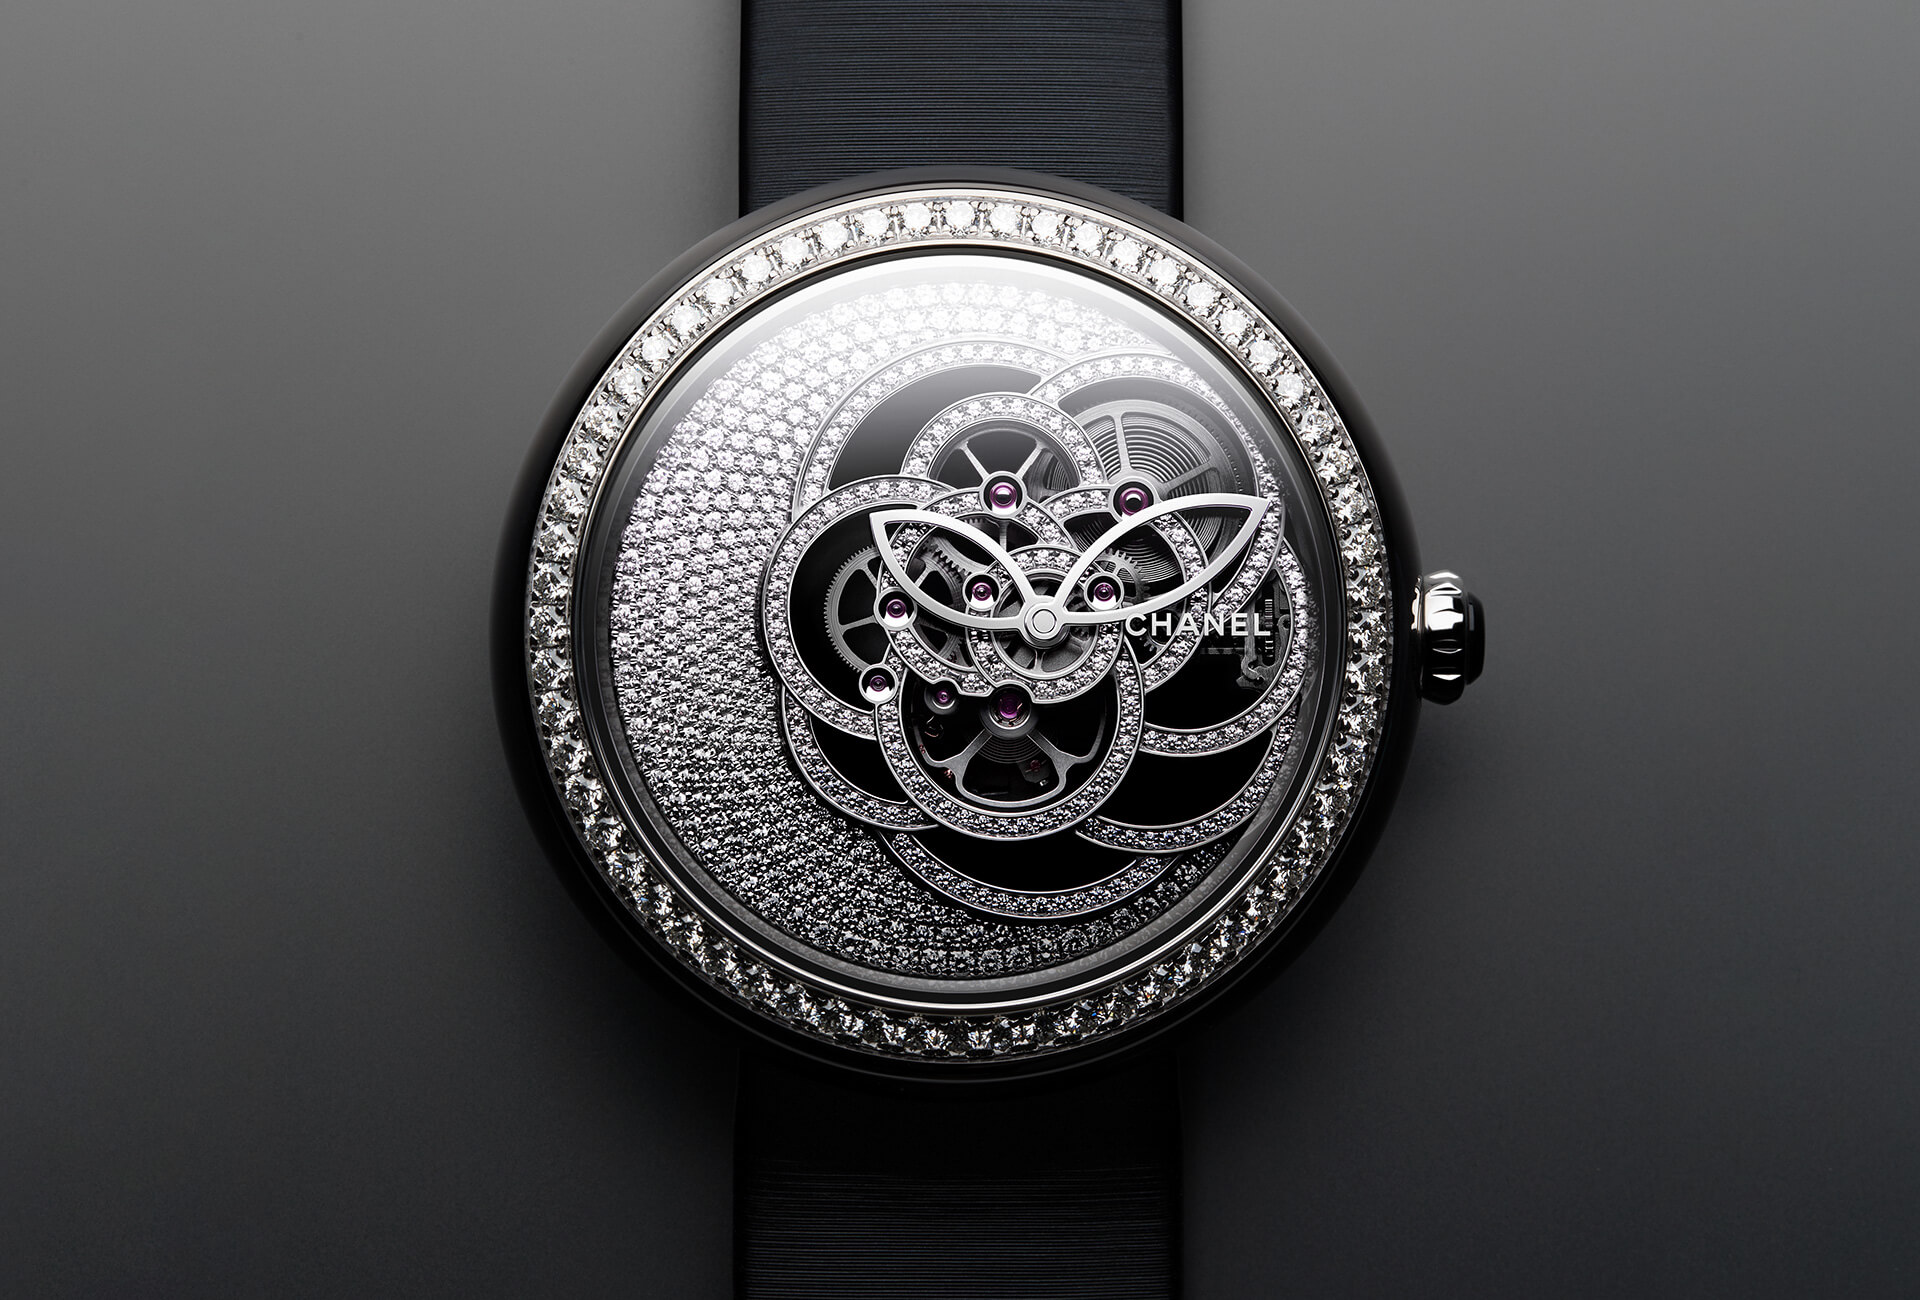 Mademoiselle chanel prive watch craftsmanship recommendations to wear for everyday in 2019